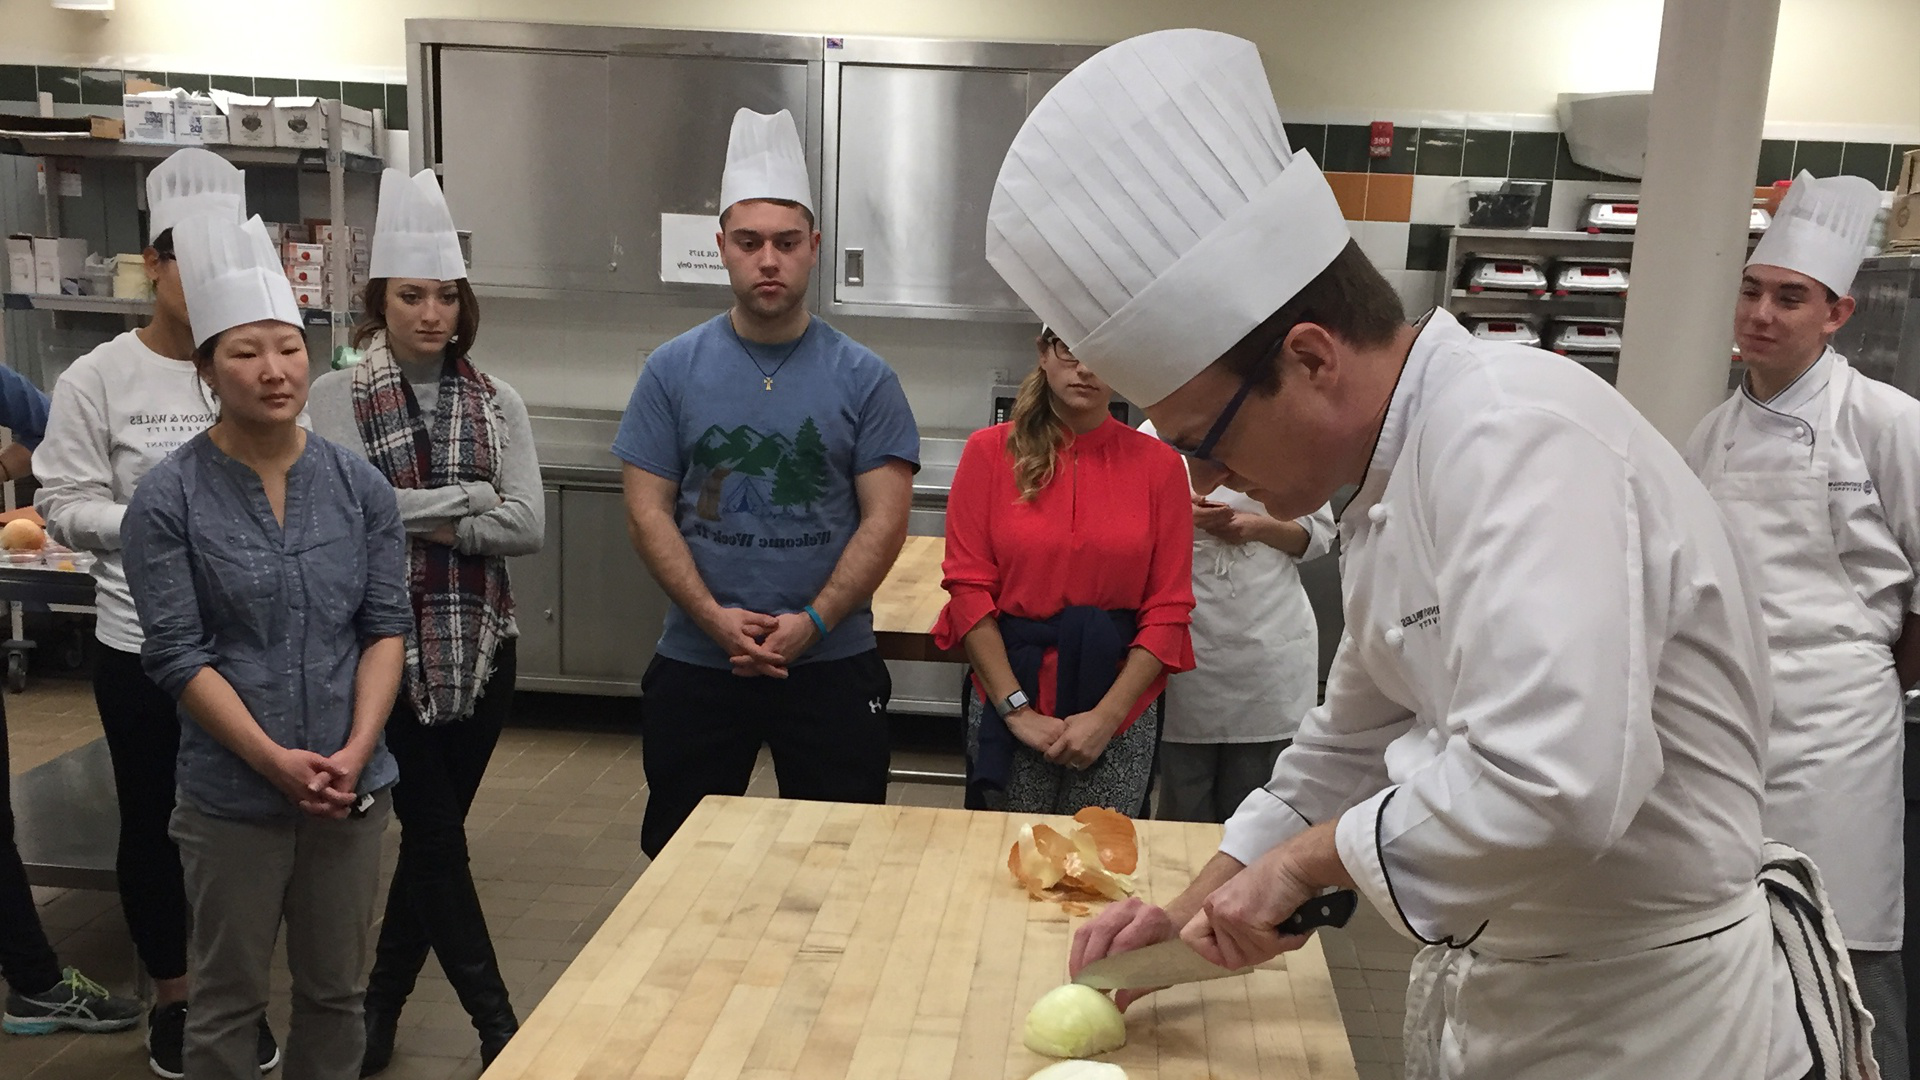 Todd Seyfarth demonstrates knife skills at the beginning of class.